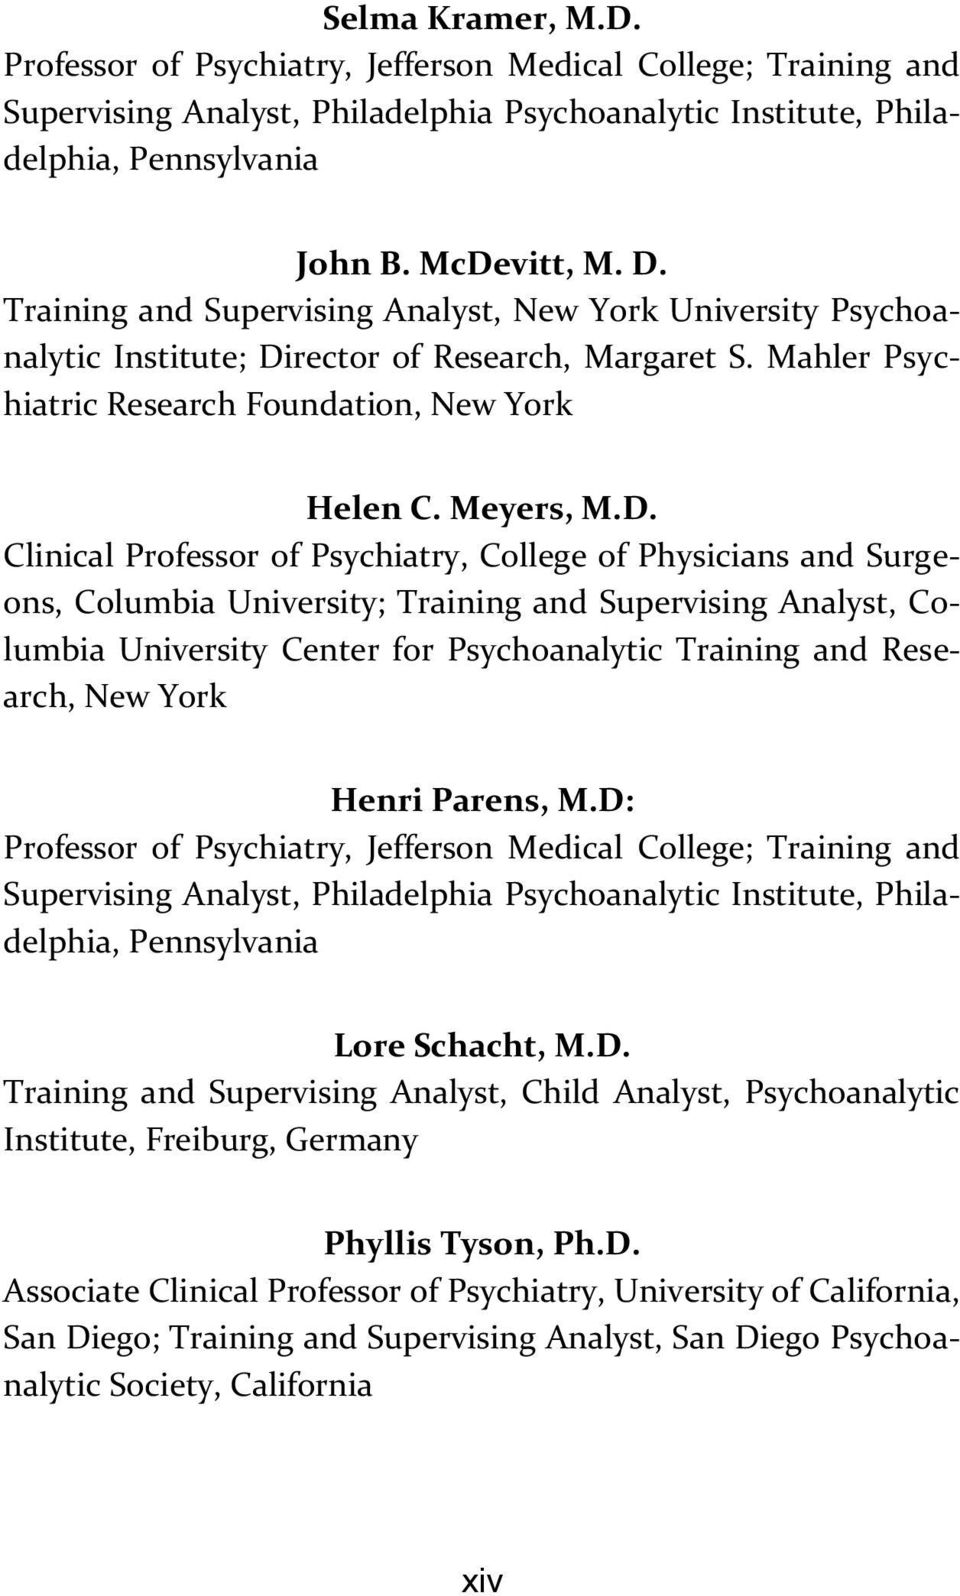 rector of Research, Margaret S. Mahler Psychiatric Research Foundation, New York Helen C. Meyers, M.D.